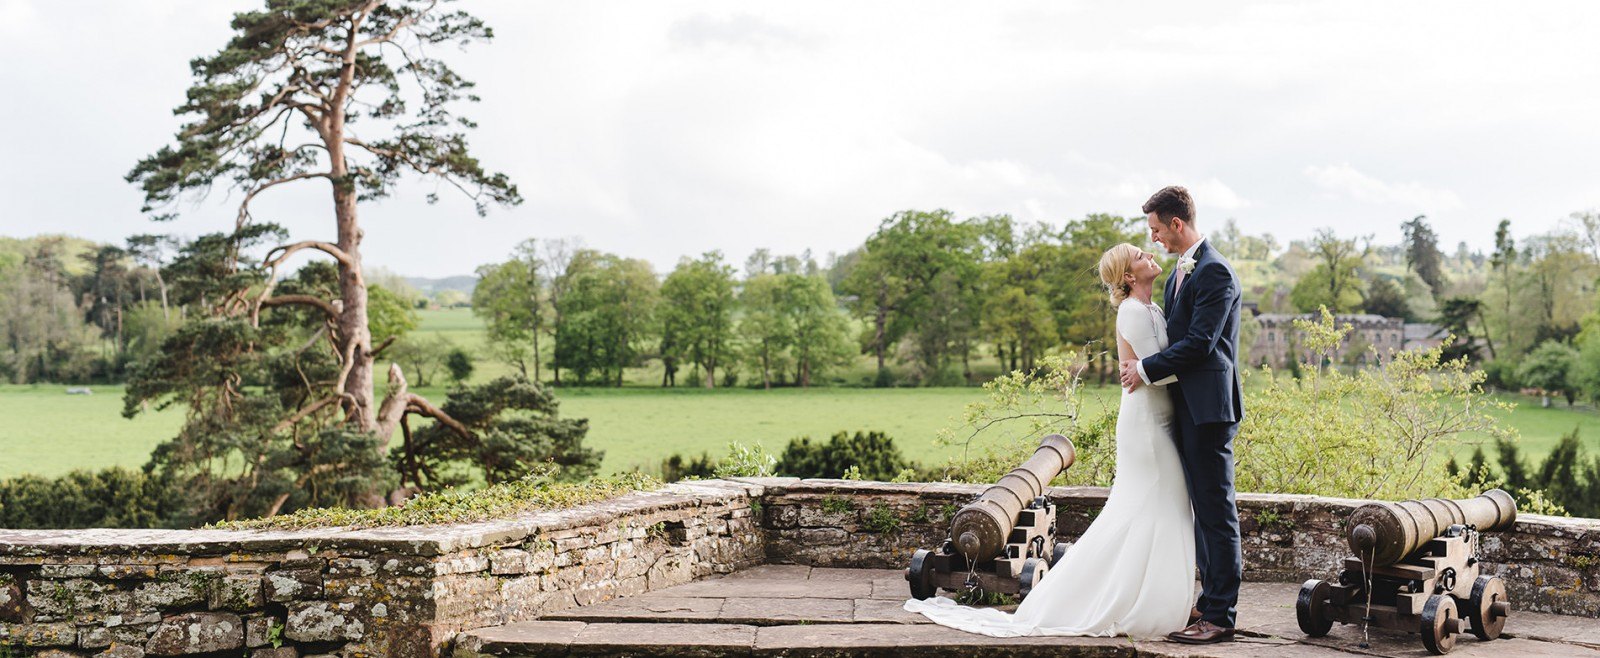 Gloucestershire wedding photography image